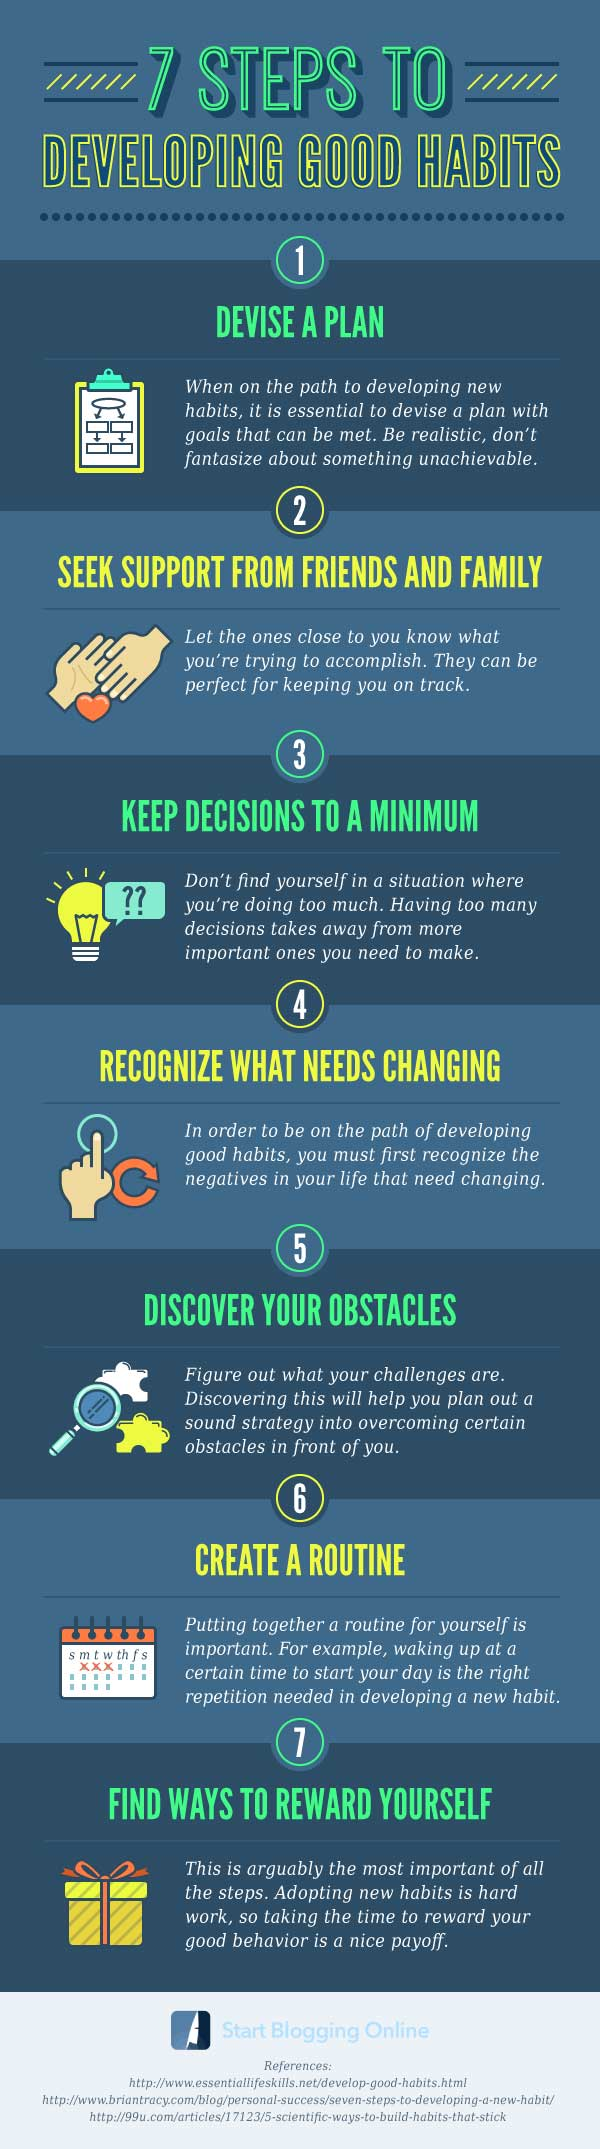 7 Steps to Developing Good Habits